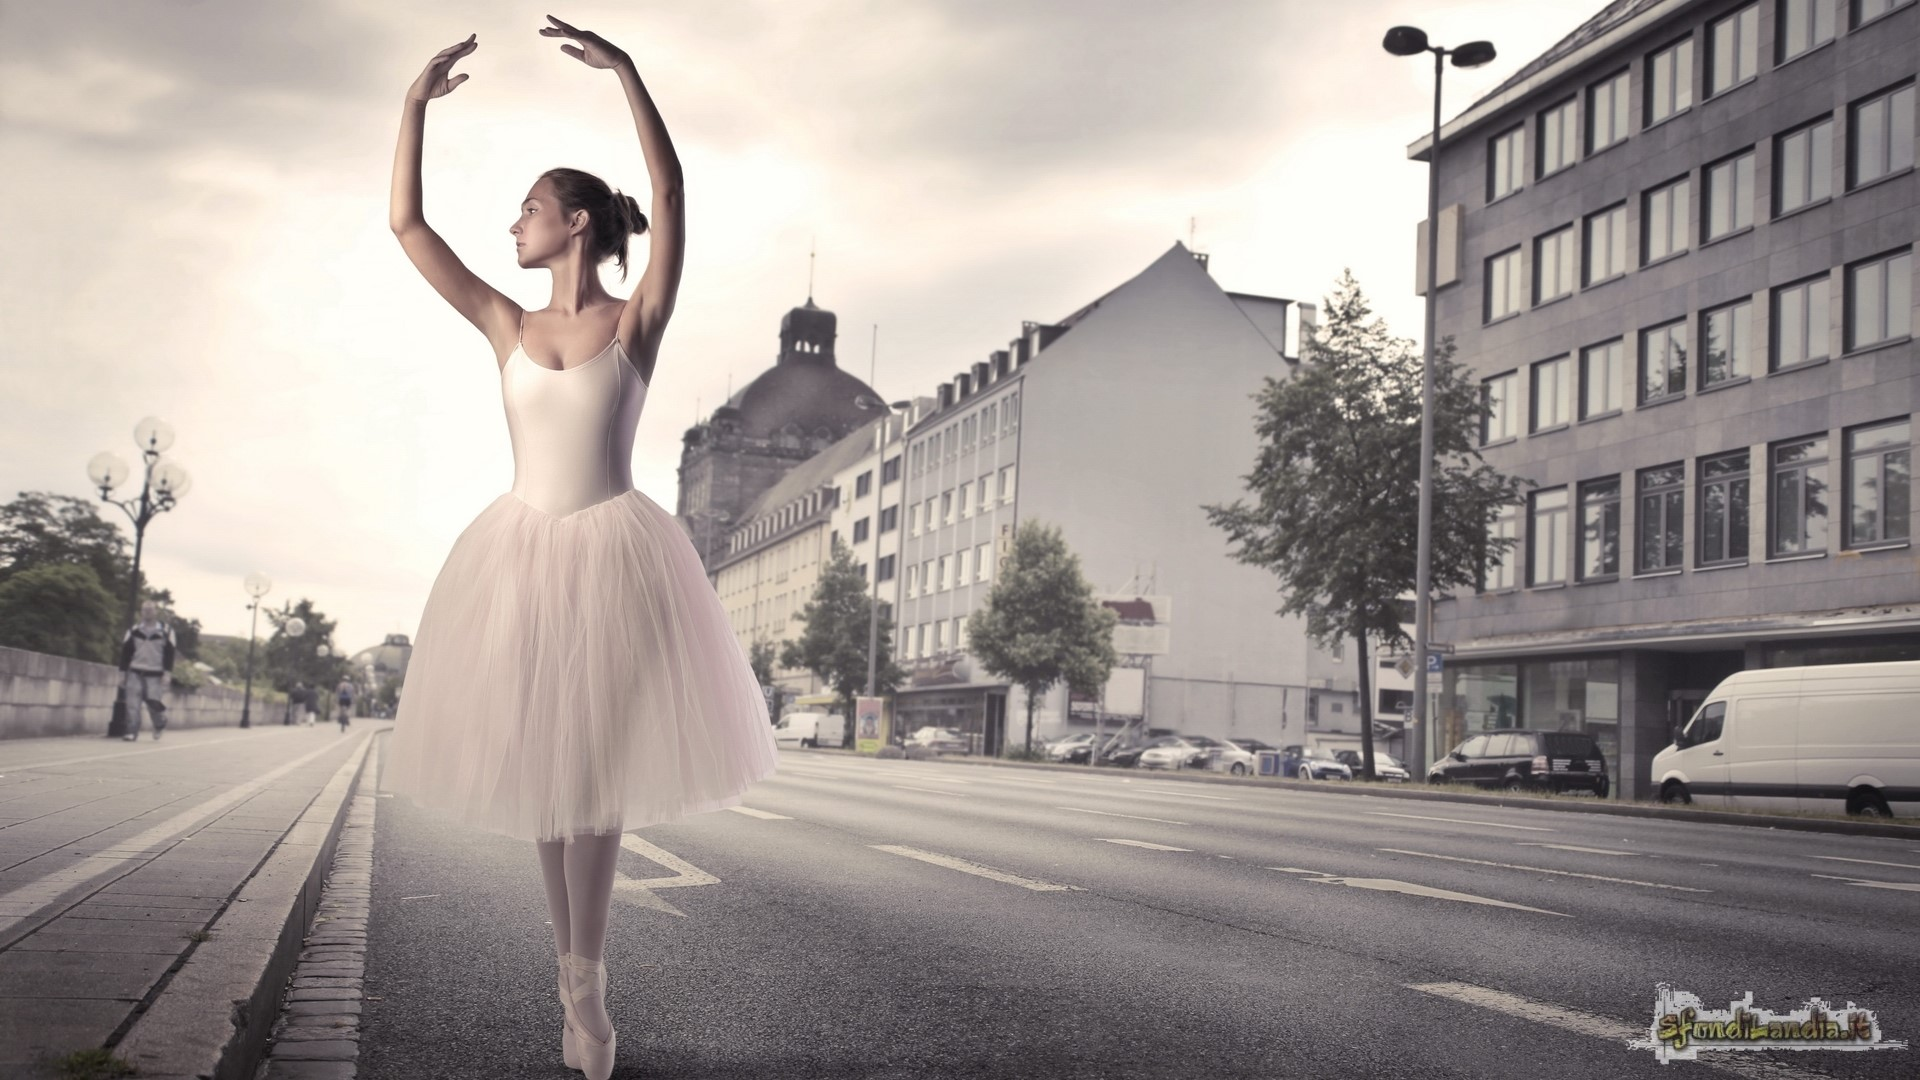 Dancing On The Street